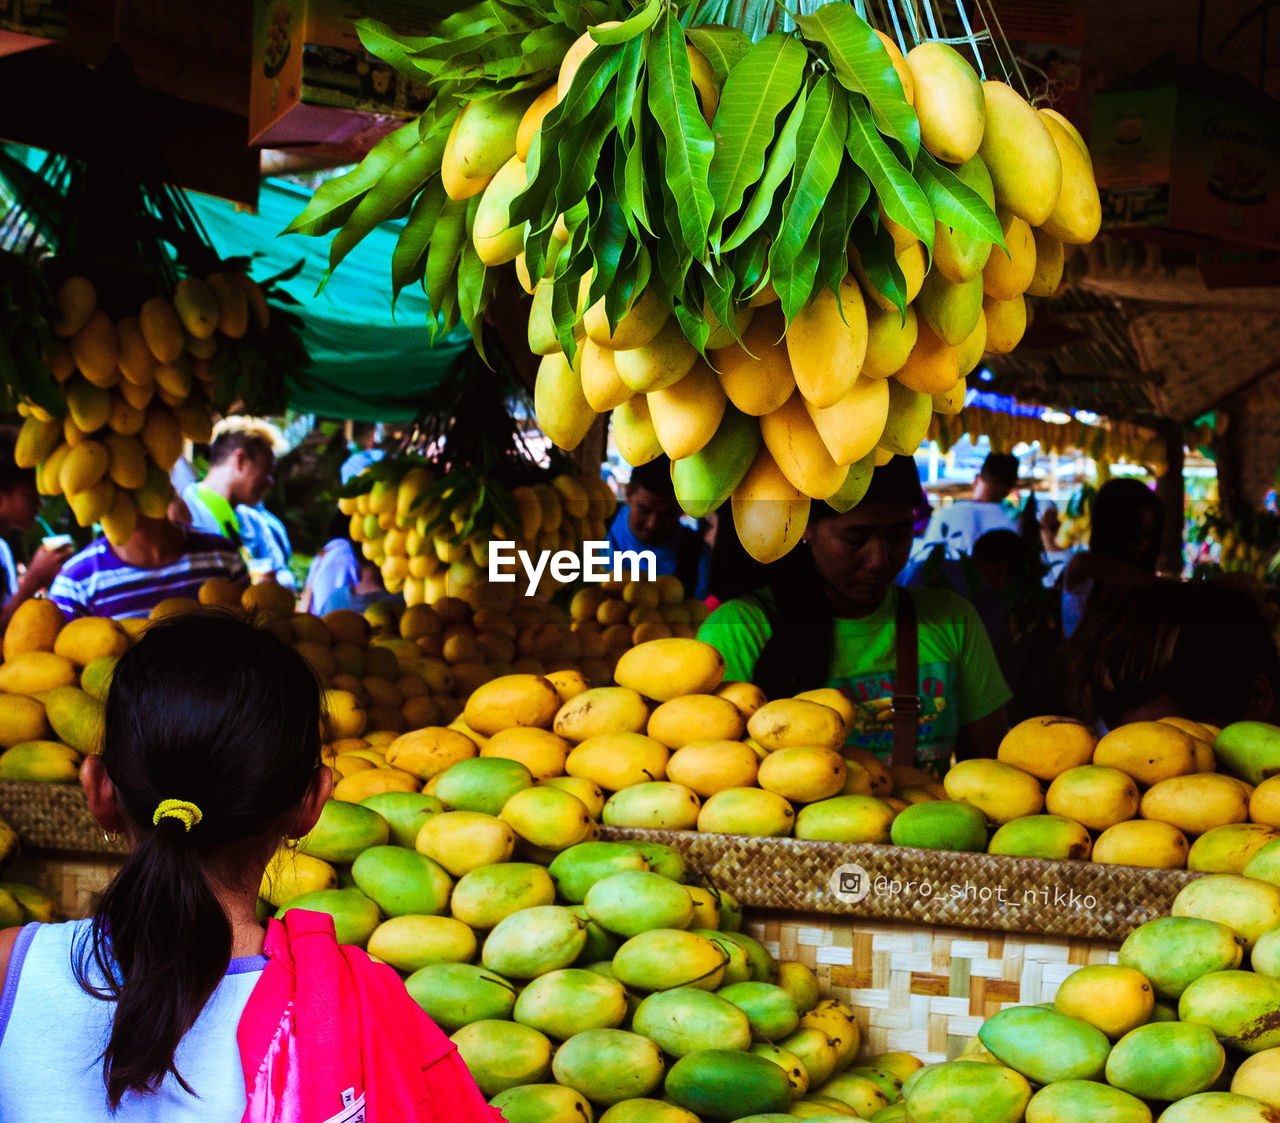 Rear View Of Fruit For Sale At Market Stall